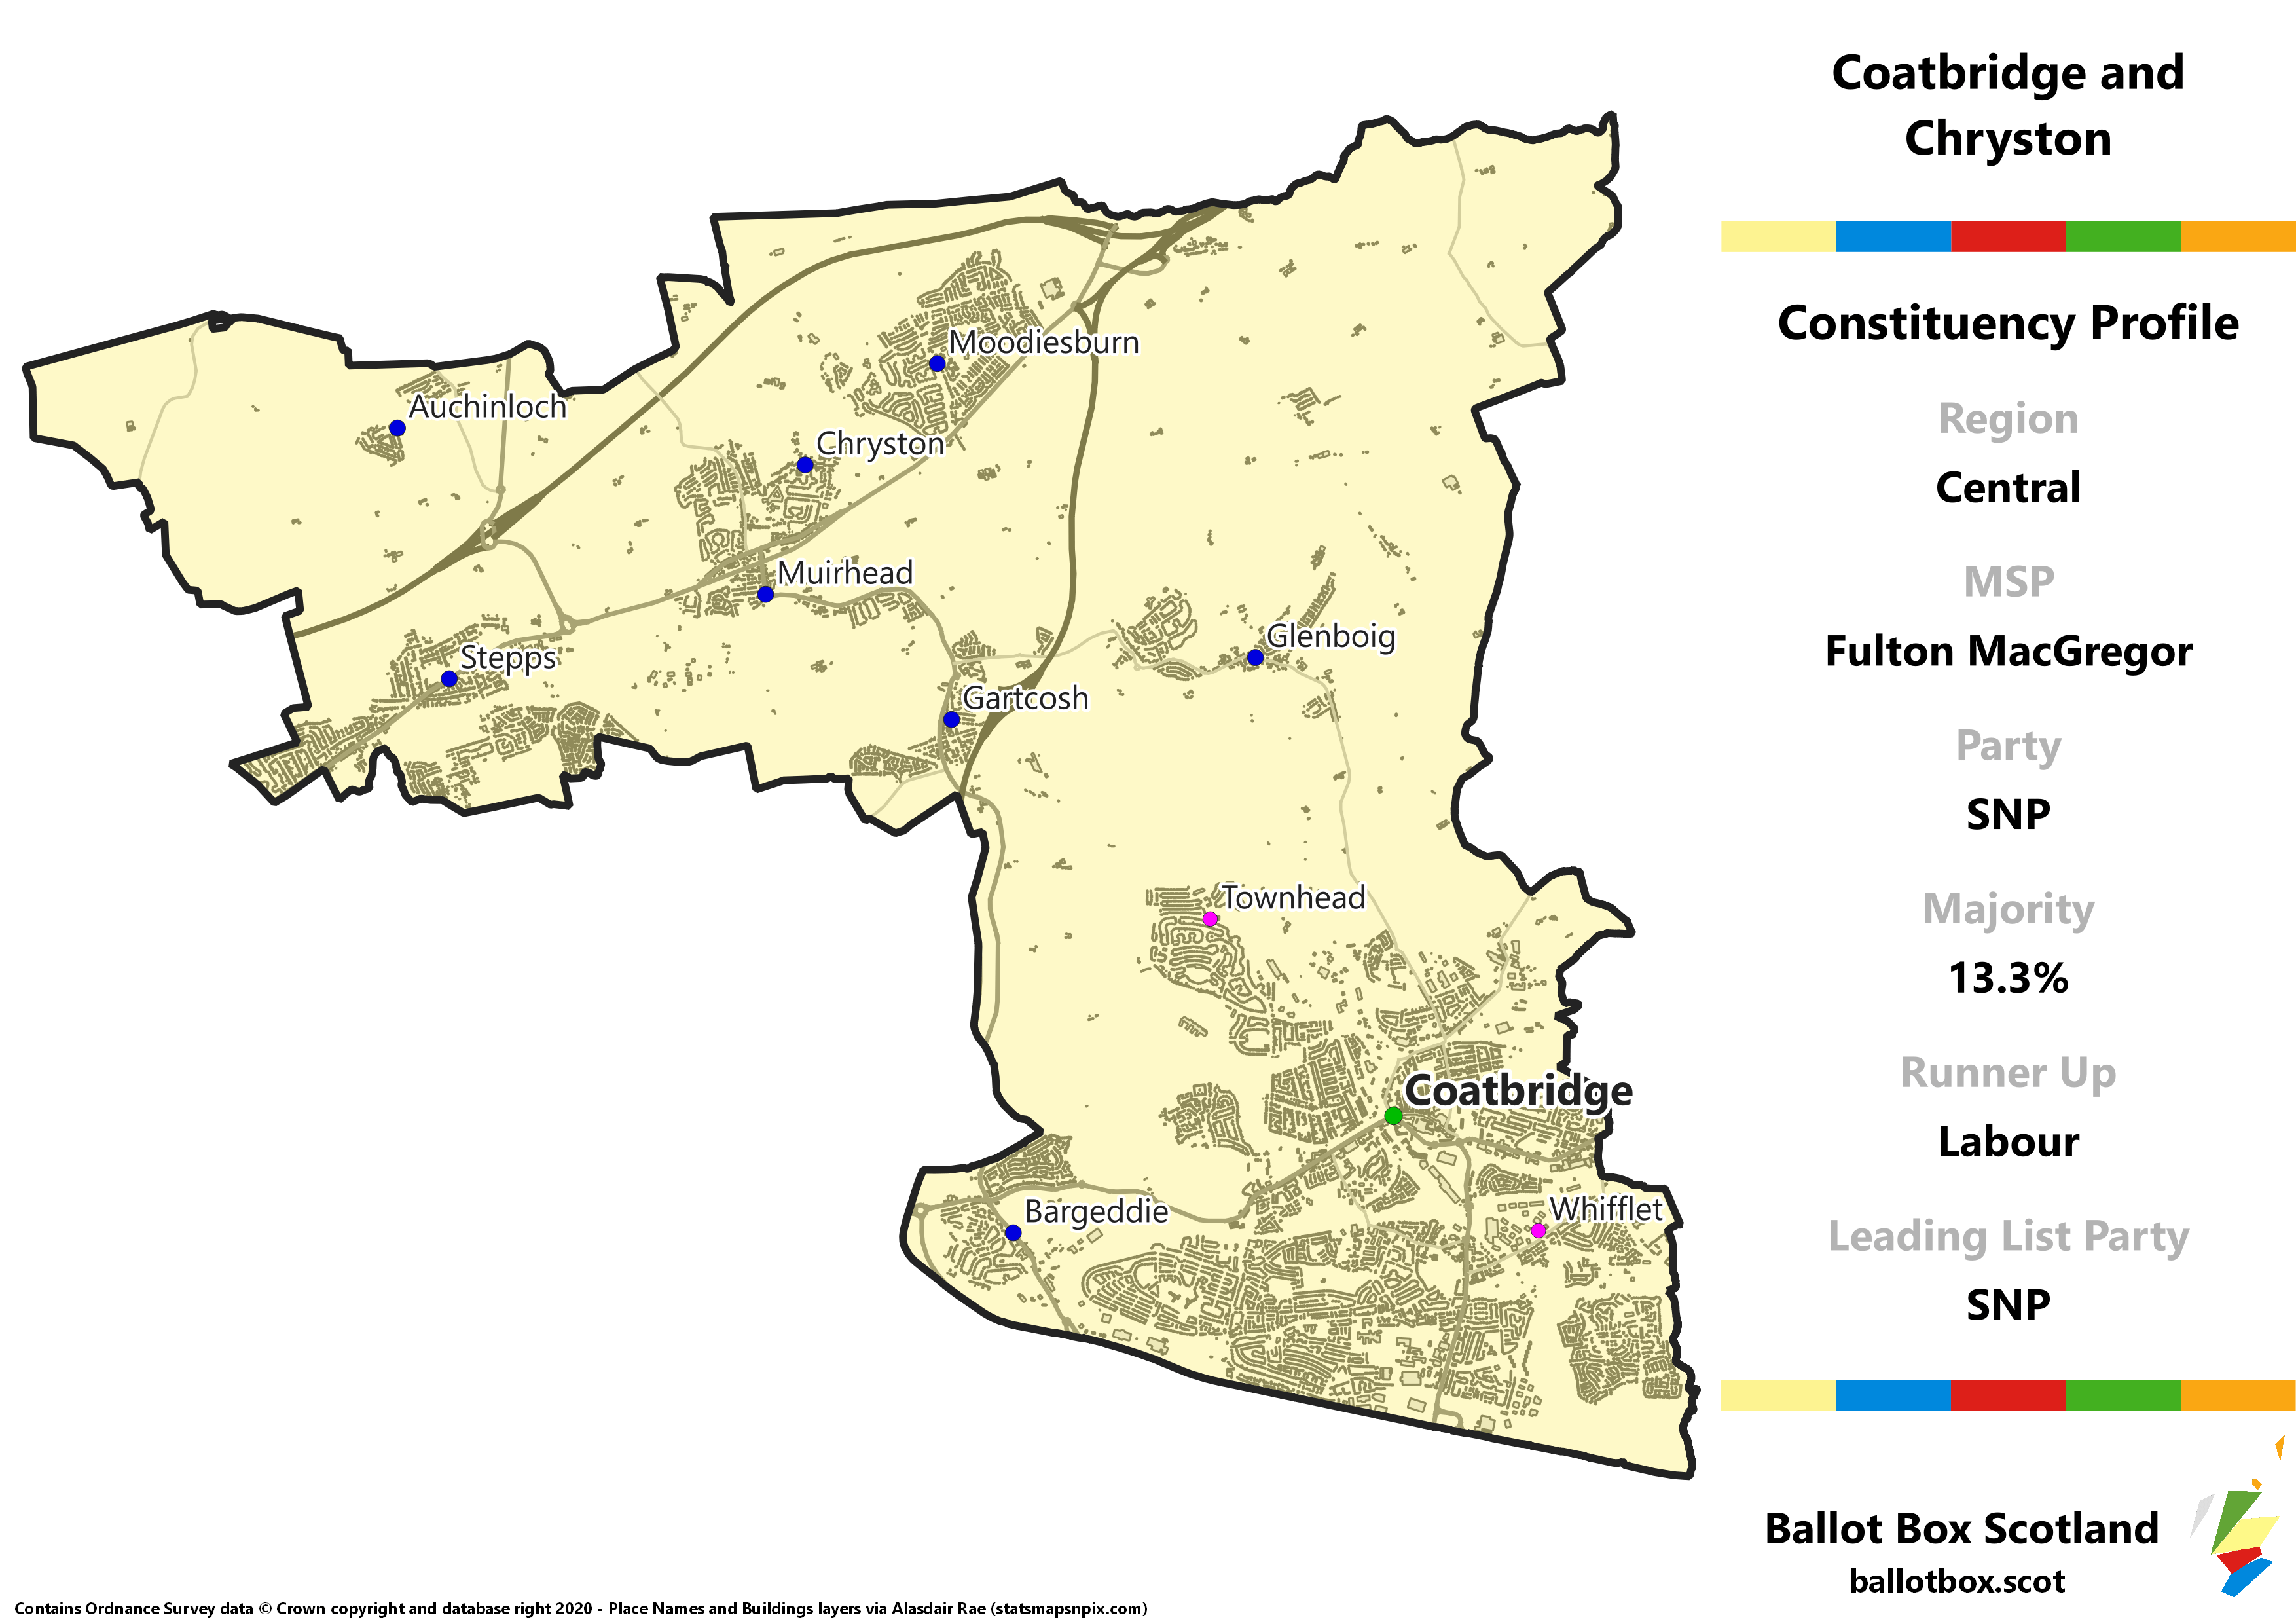 Central Region – Coatbridge and Chryston Constituency Map